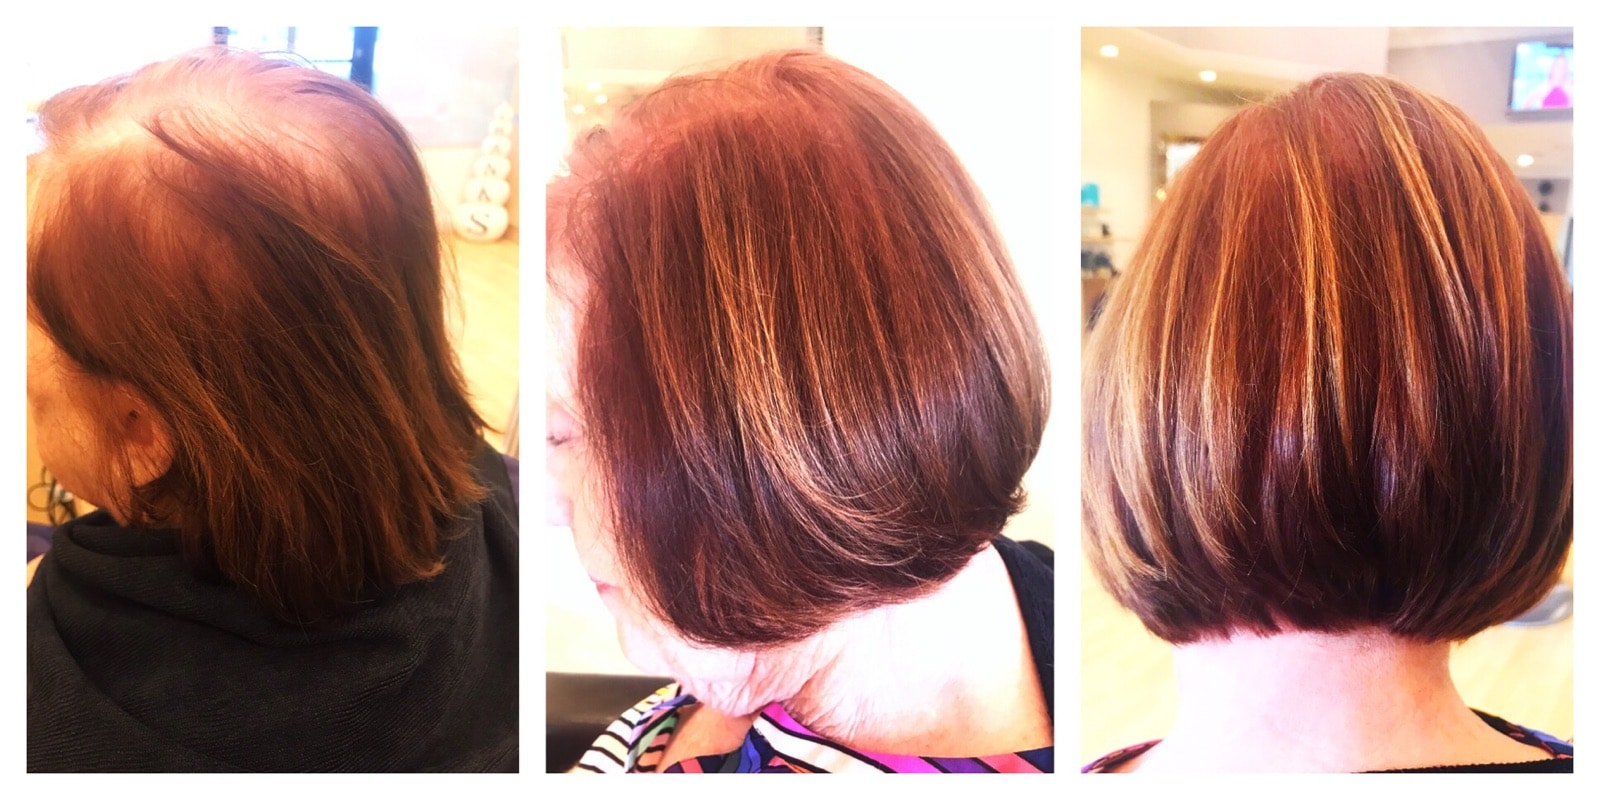 B2 Before and After Hair Makeovers in Naples FL